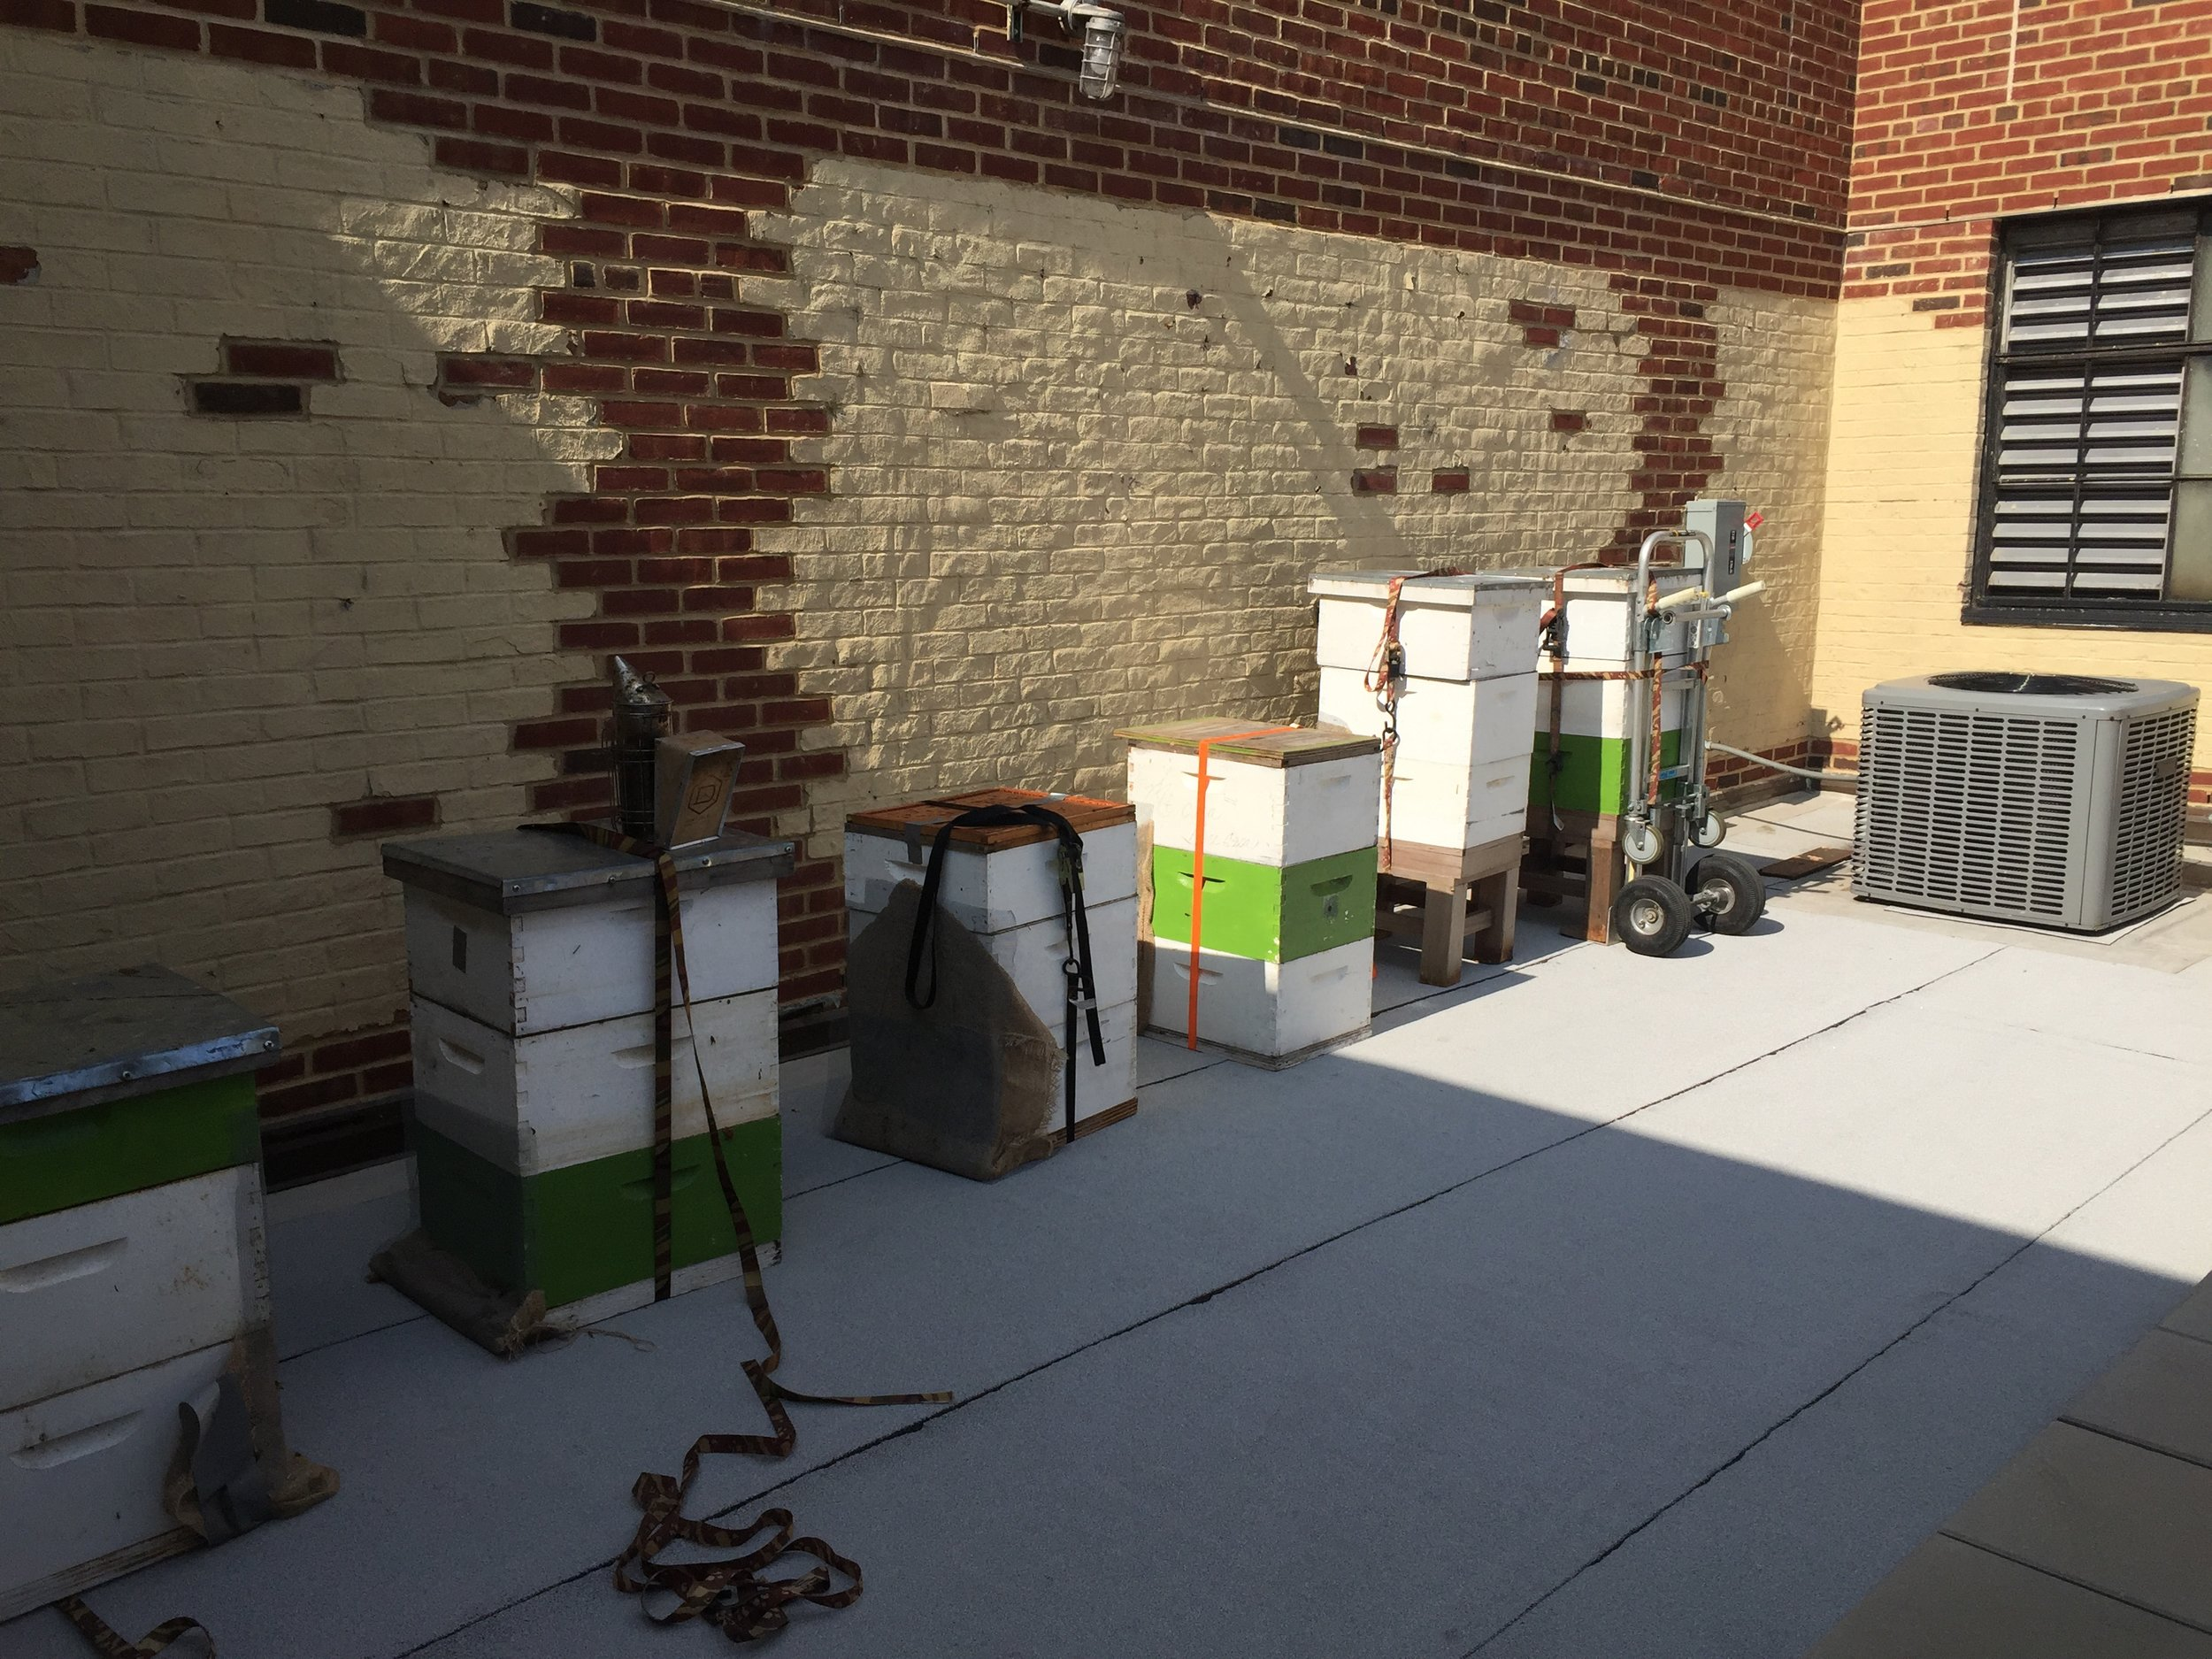 rooftop apiary being installed